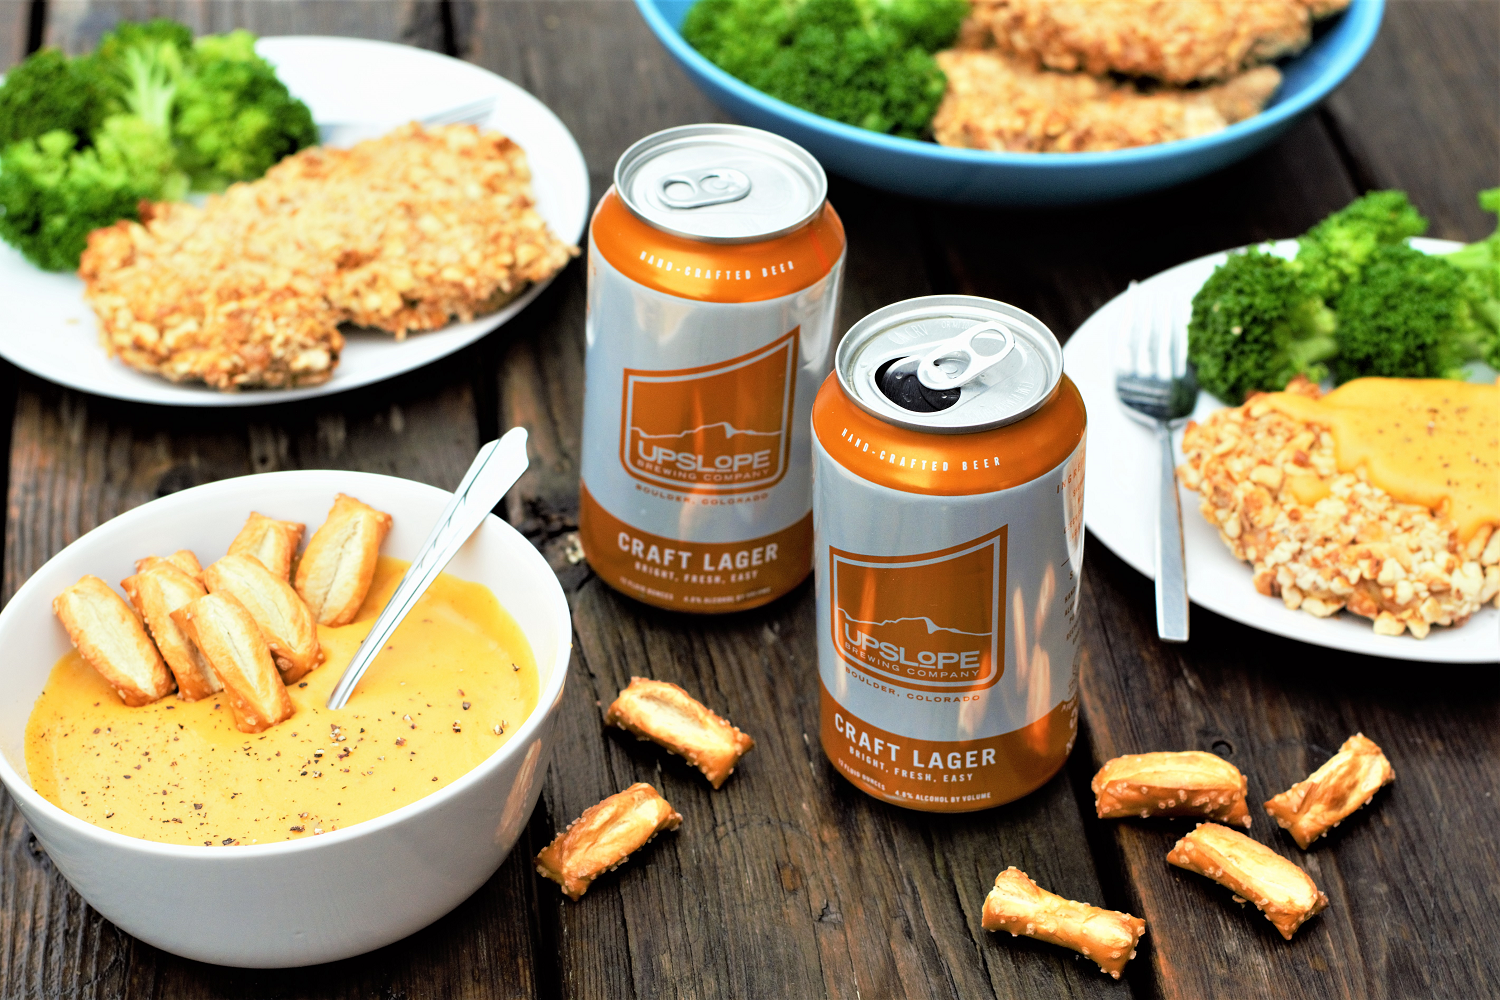 Celebrating the love triangle of beer-pretzels-cheese: pretzel-breaded chicken baked to crispy perfection + drizzled with velvety smooth beer cheese!